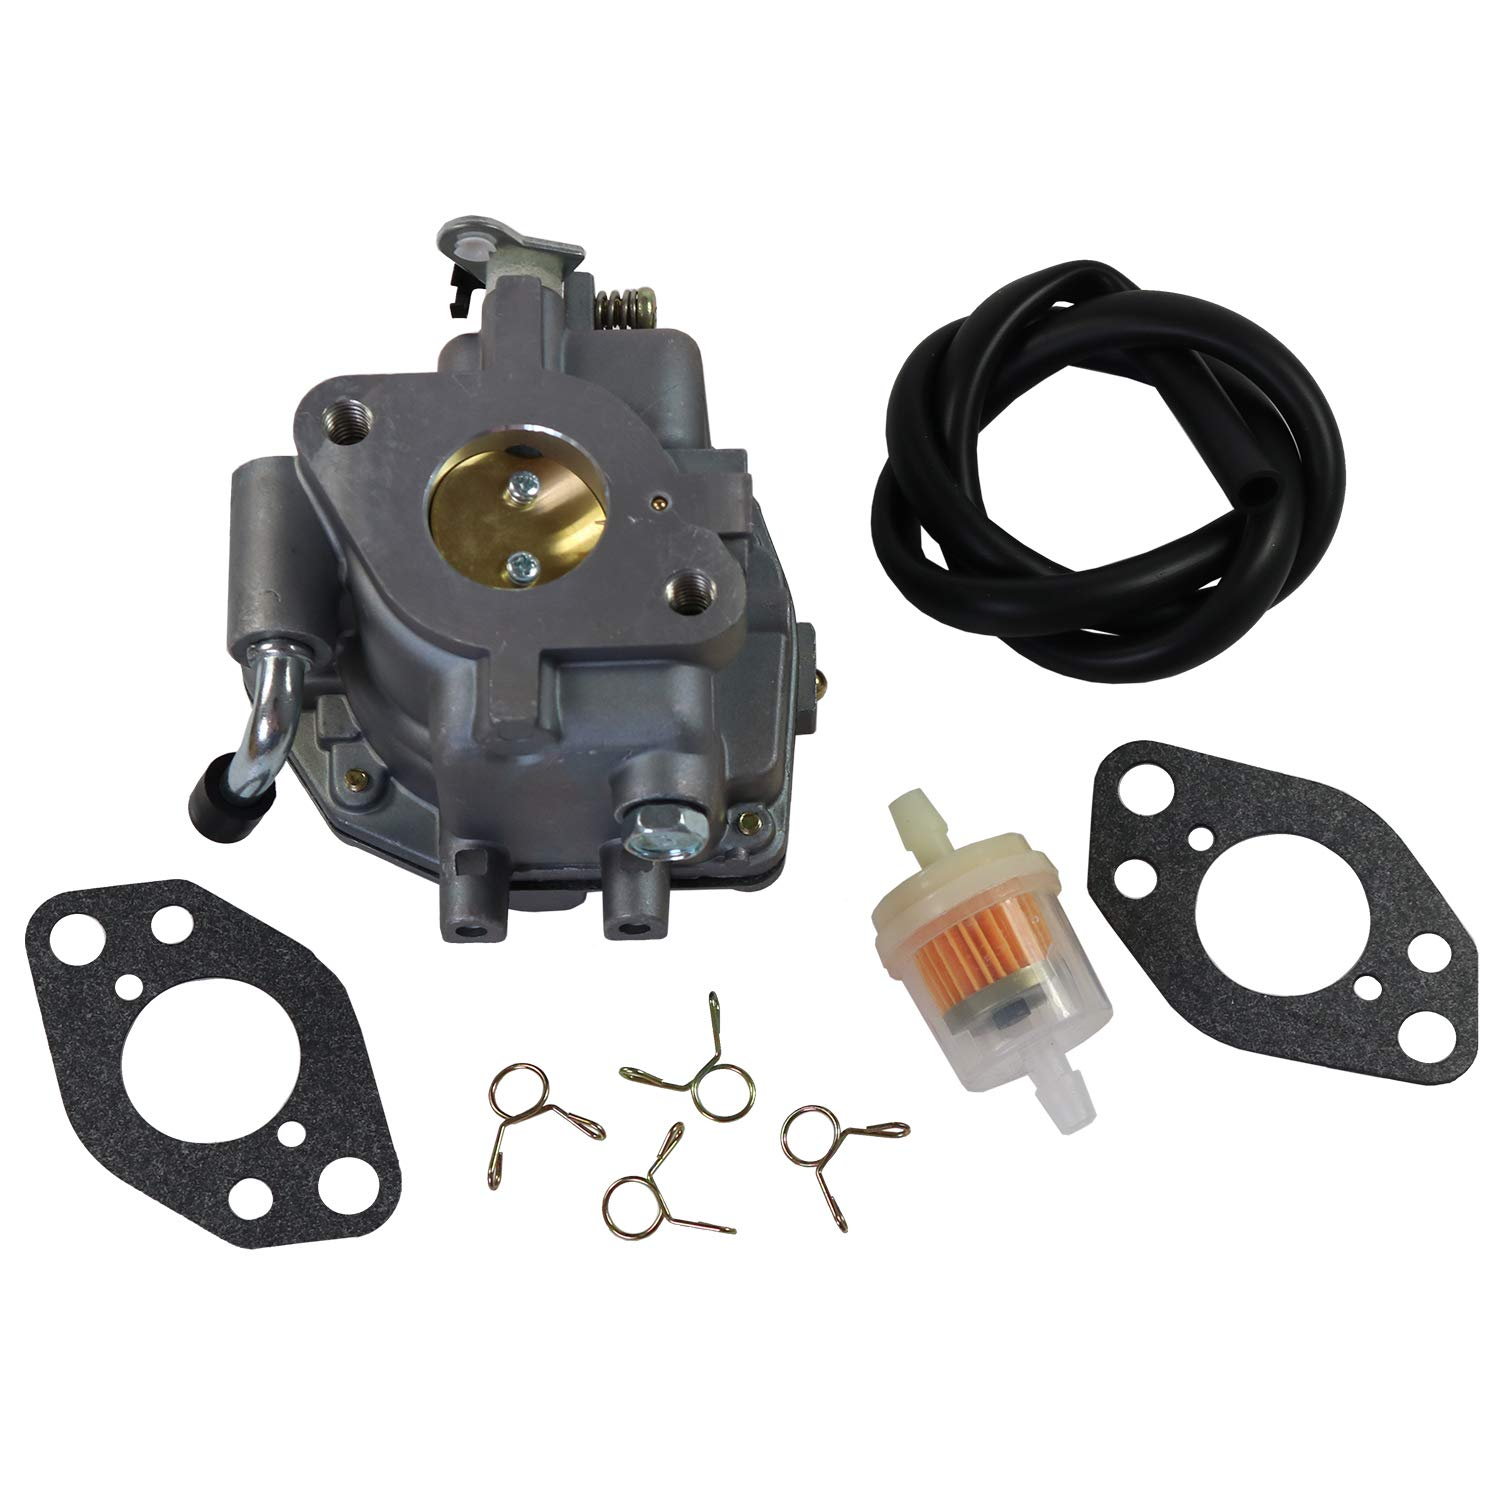 JDMSPEED New Carburetor Fit For Briggs Stratton 305442 305445 846082 845906 844041 844988 844039